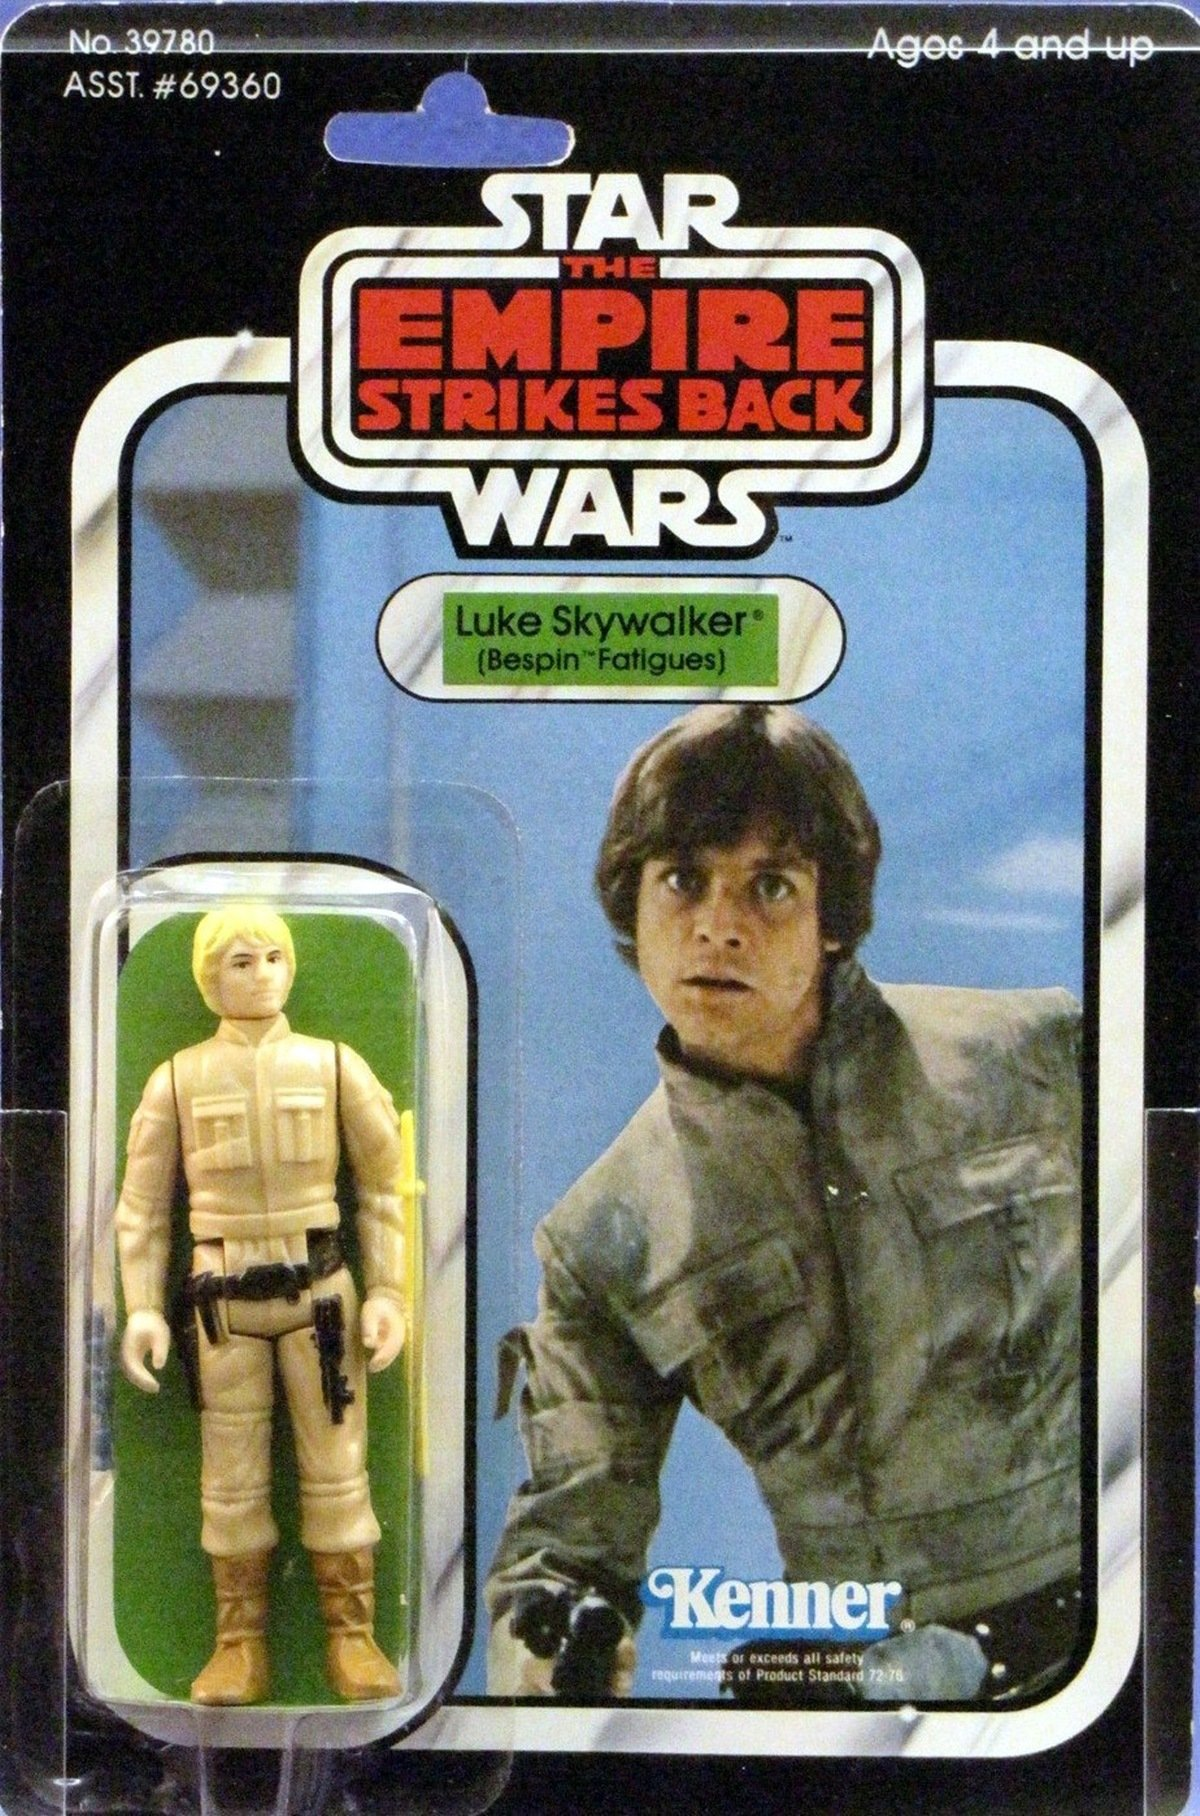 5 6 10 Star Wars Toys That Will Earn You A Fortune!